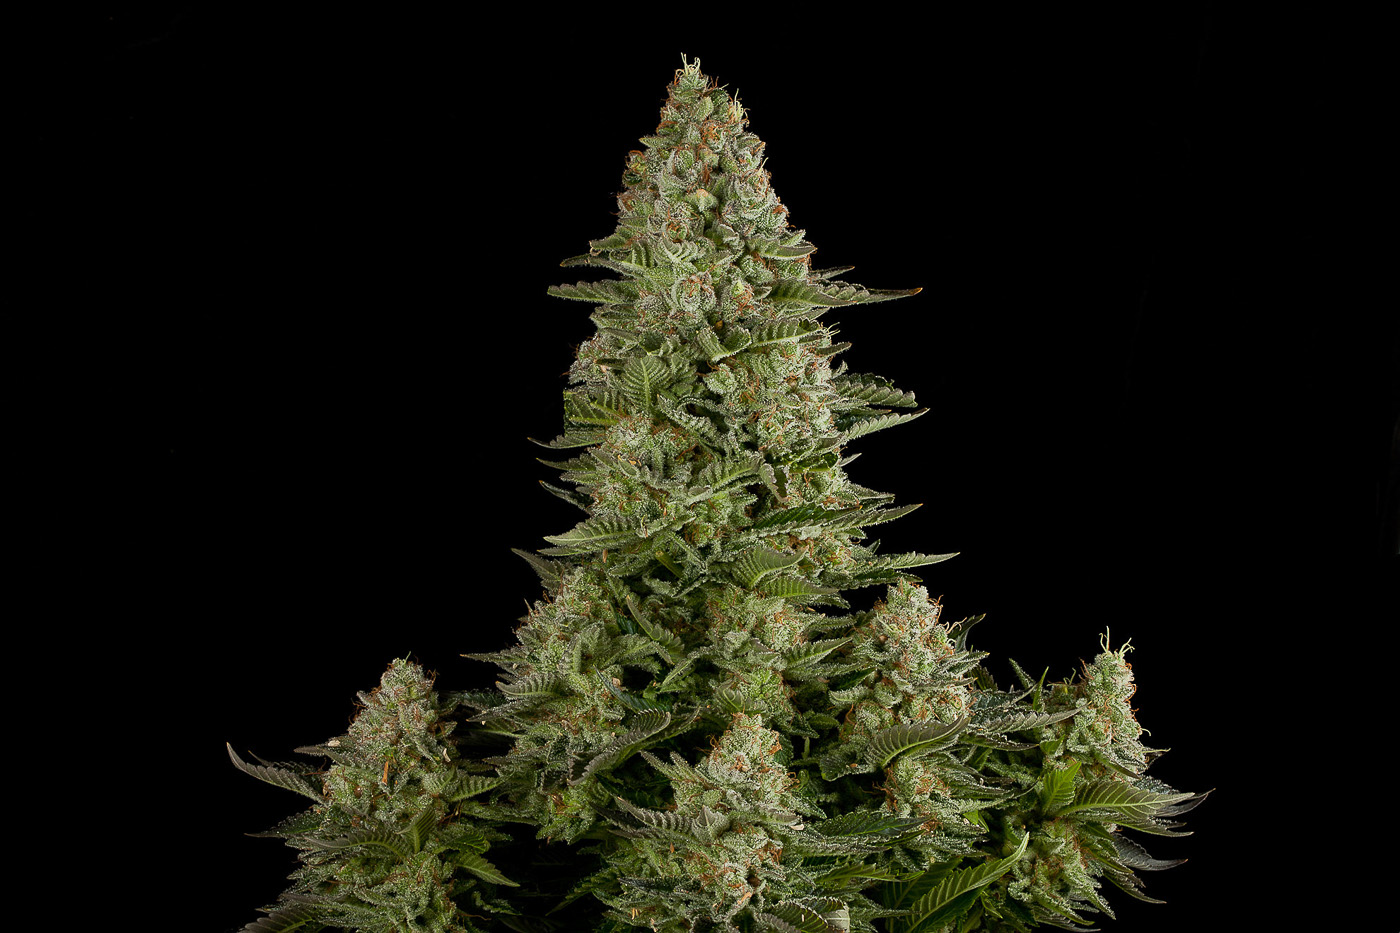 White Widow – Buy White Widow feminized cannabis seeds